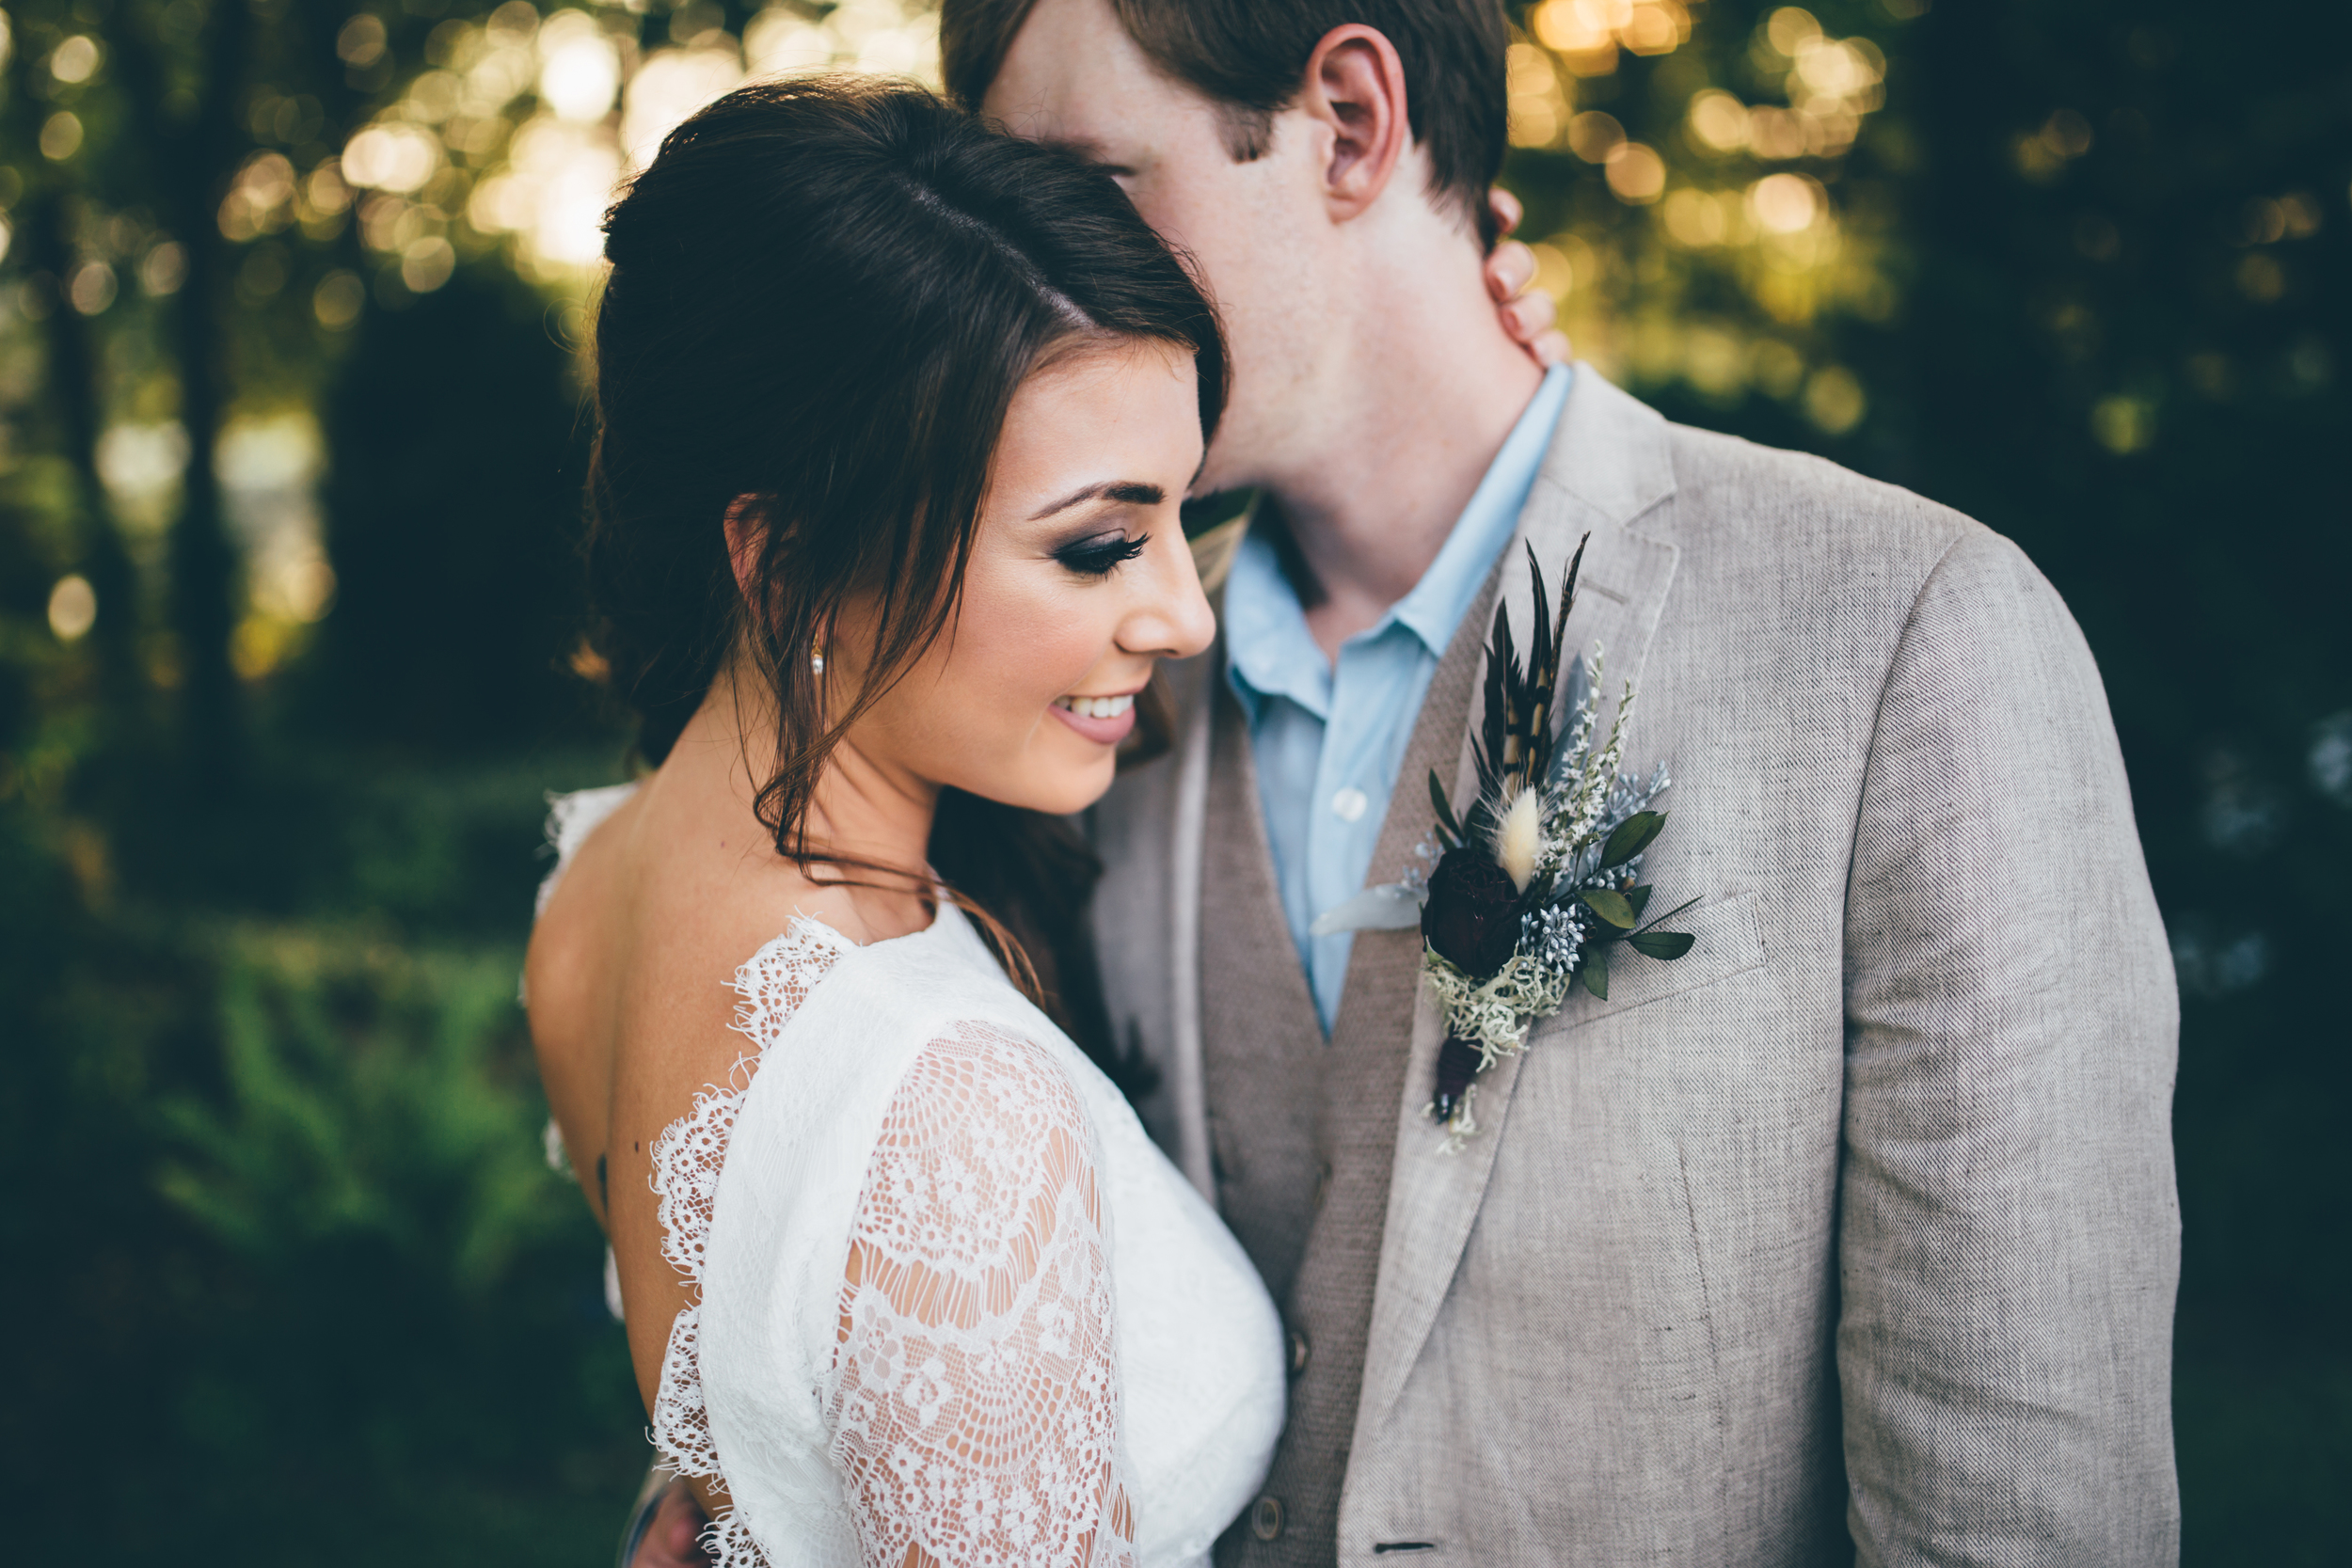 This stunning bride, Jes, shares the process of planning for her big day.